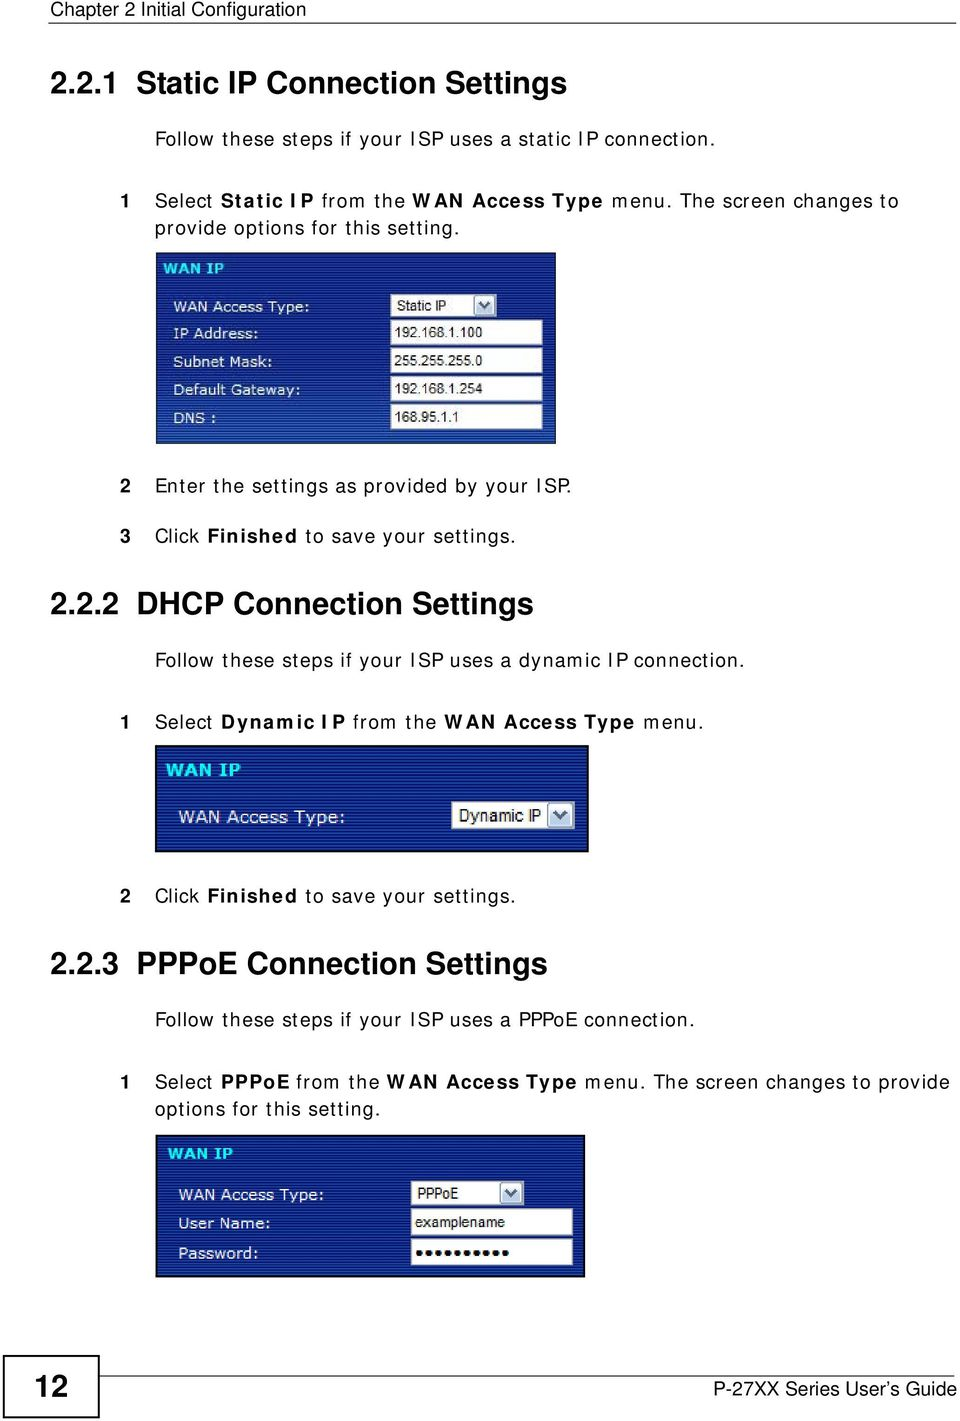 1 Select Dynamic IP from the WAN Access Type menu. 2 Click Finished to save your settings. 2.2.3 PPPoE Connection Settings Follow these steps if your ISP uses a PPPoE connection.